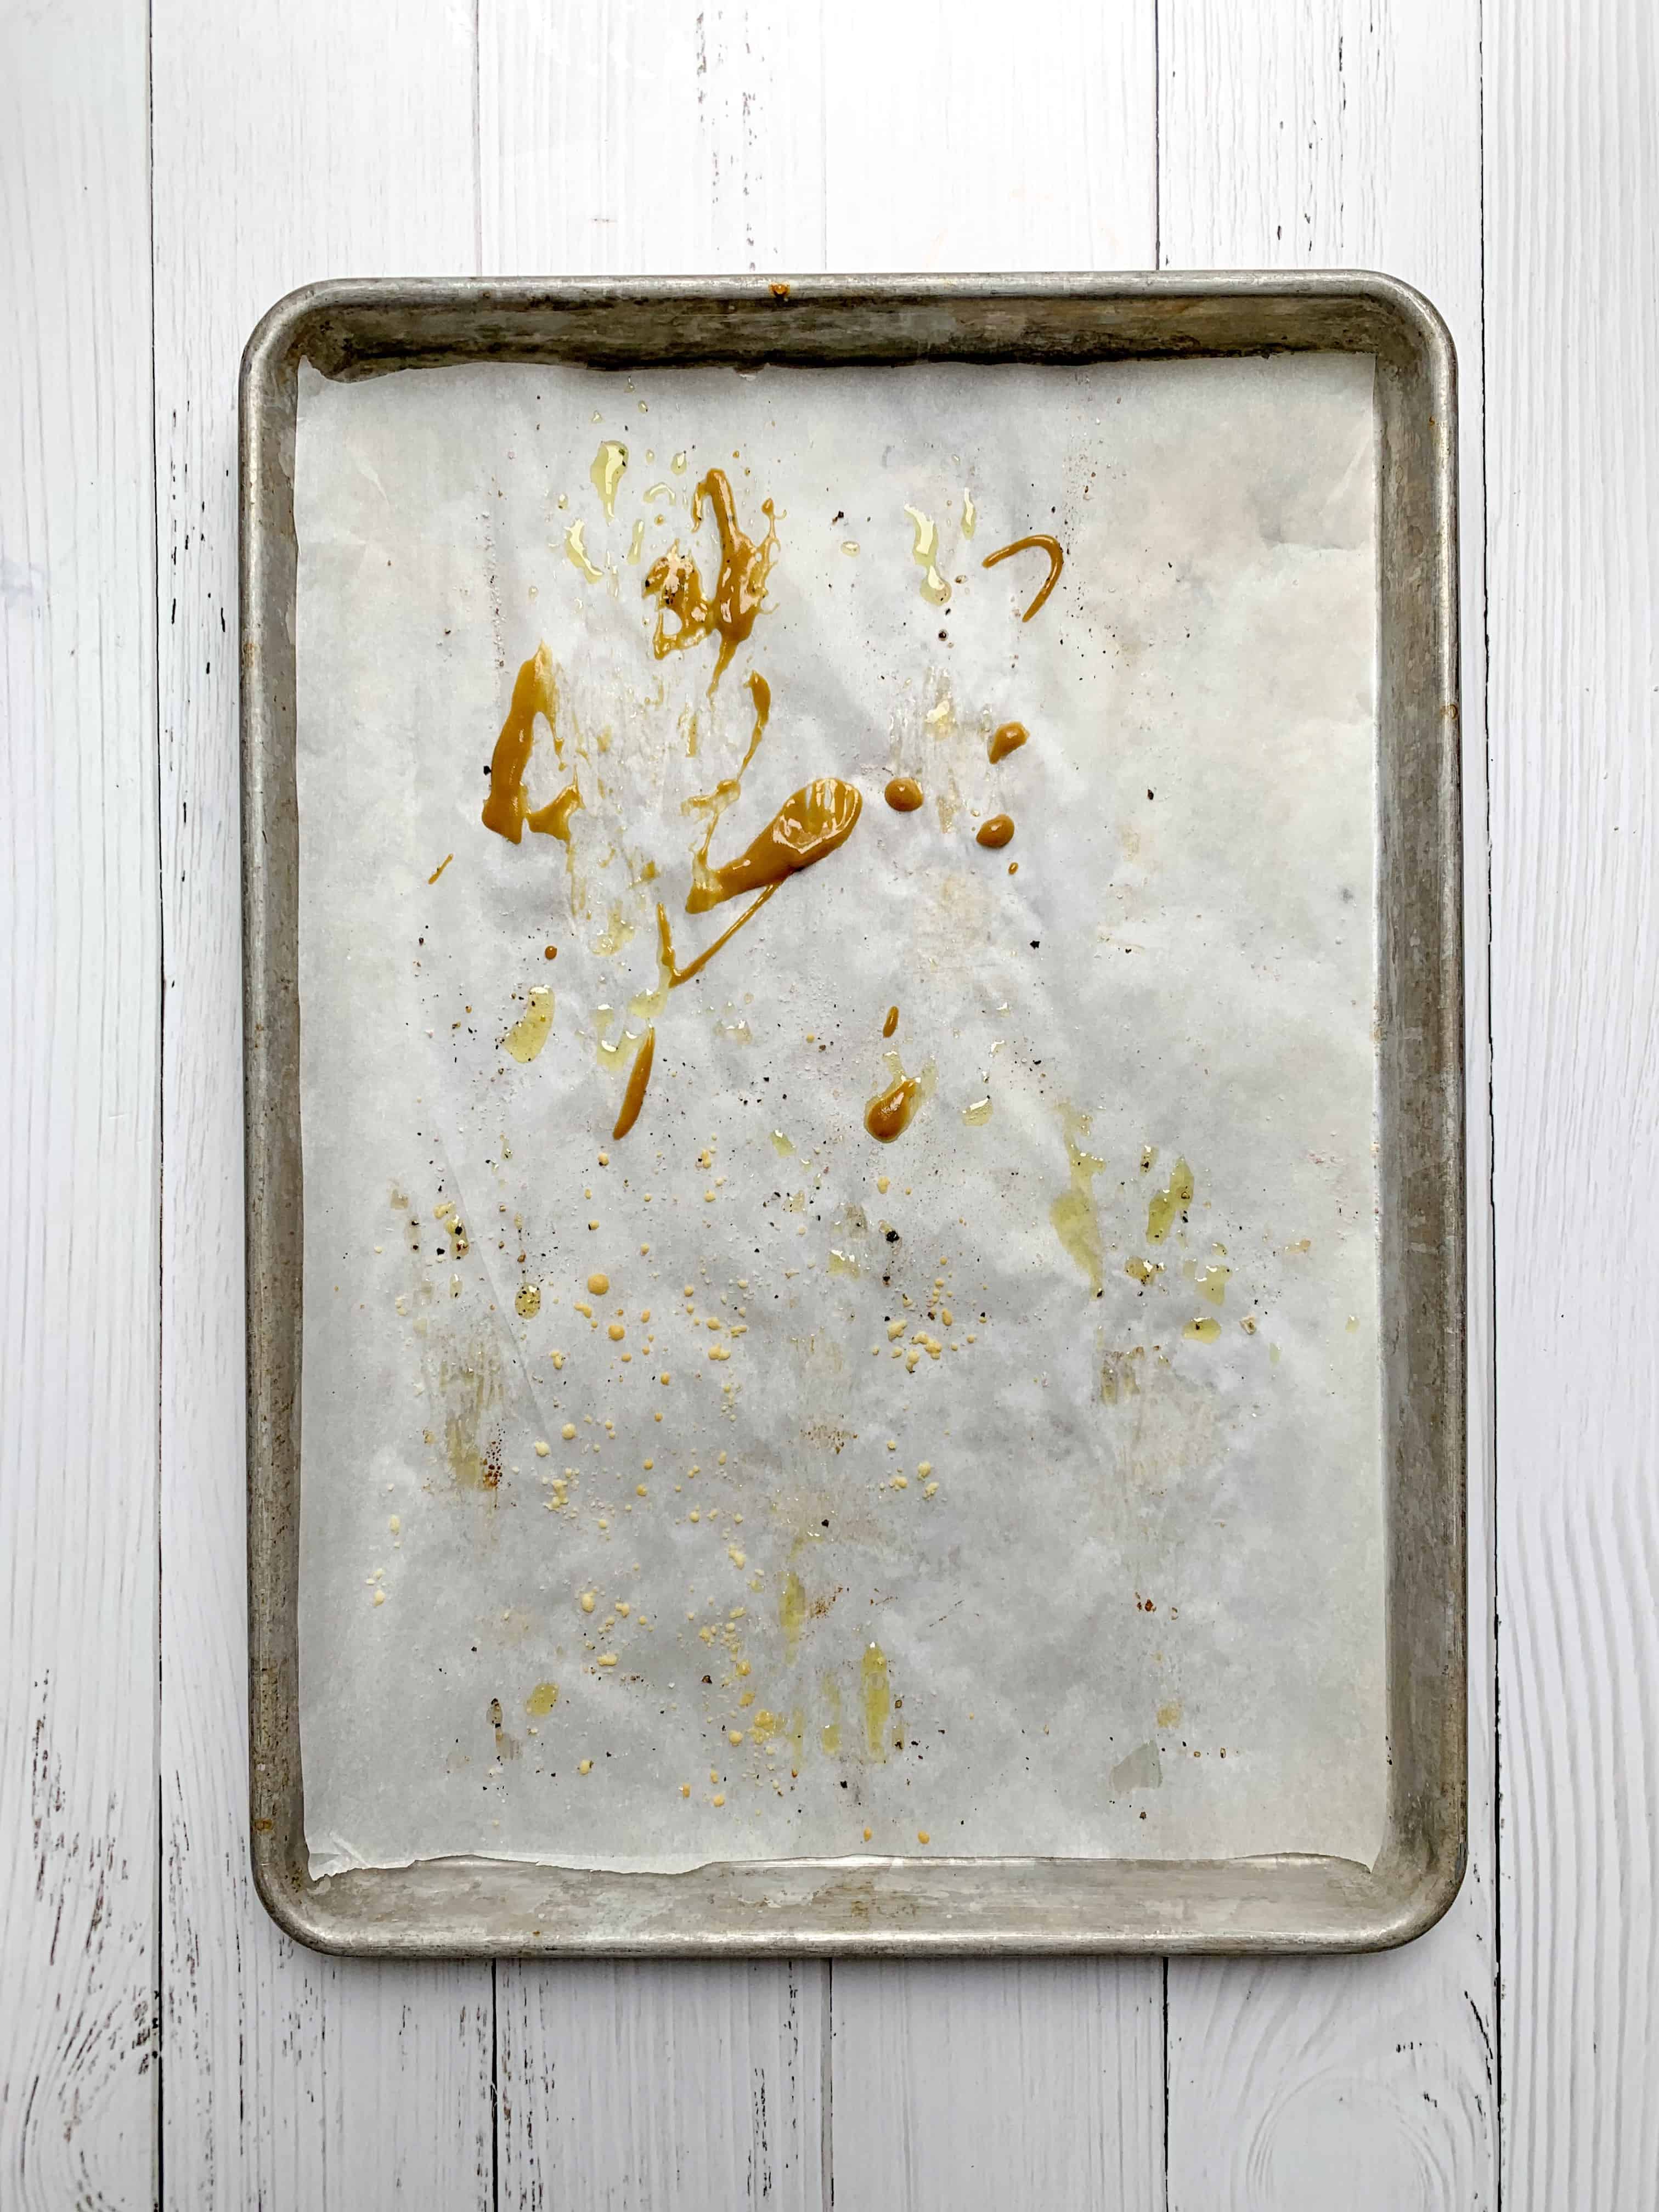 empty baking tray with only a little bit of honey mustard splatters